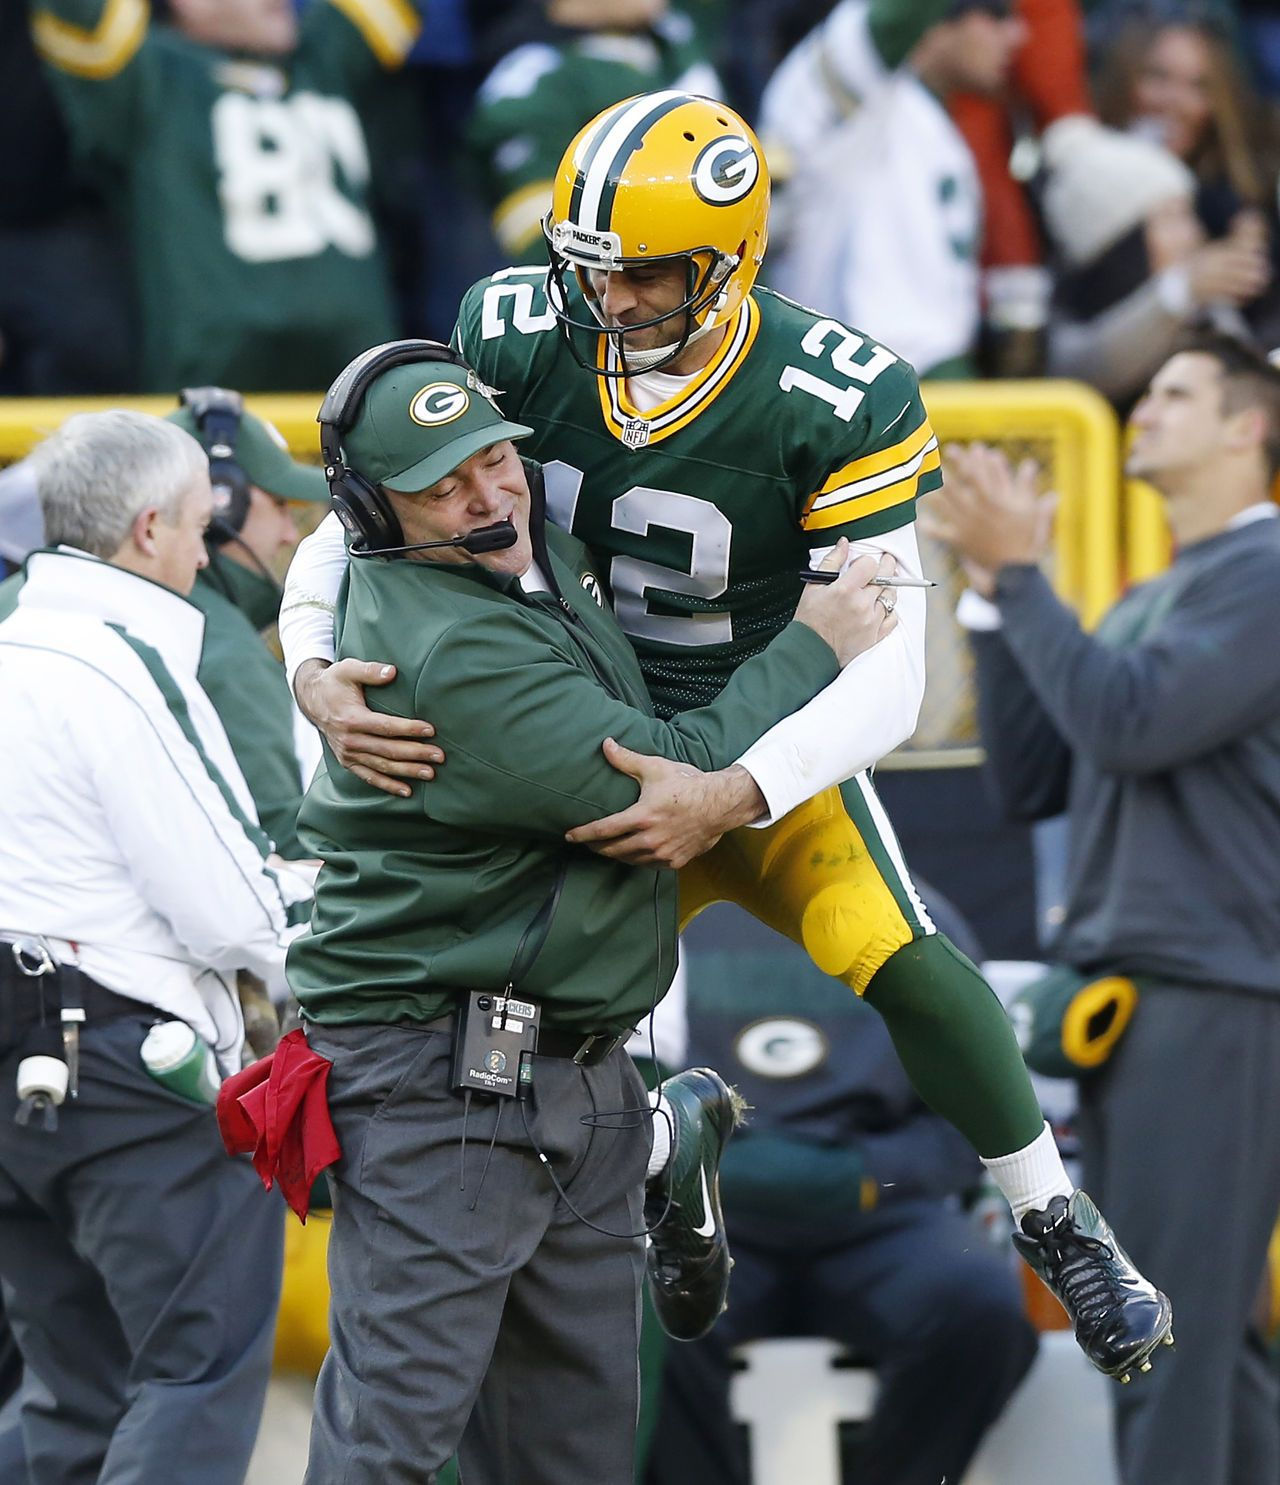 Nfl Com Photos 4 Bro Hug Green Bay Packers Green Bay Packers Fans Green Bay Packers Football